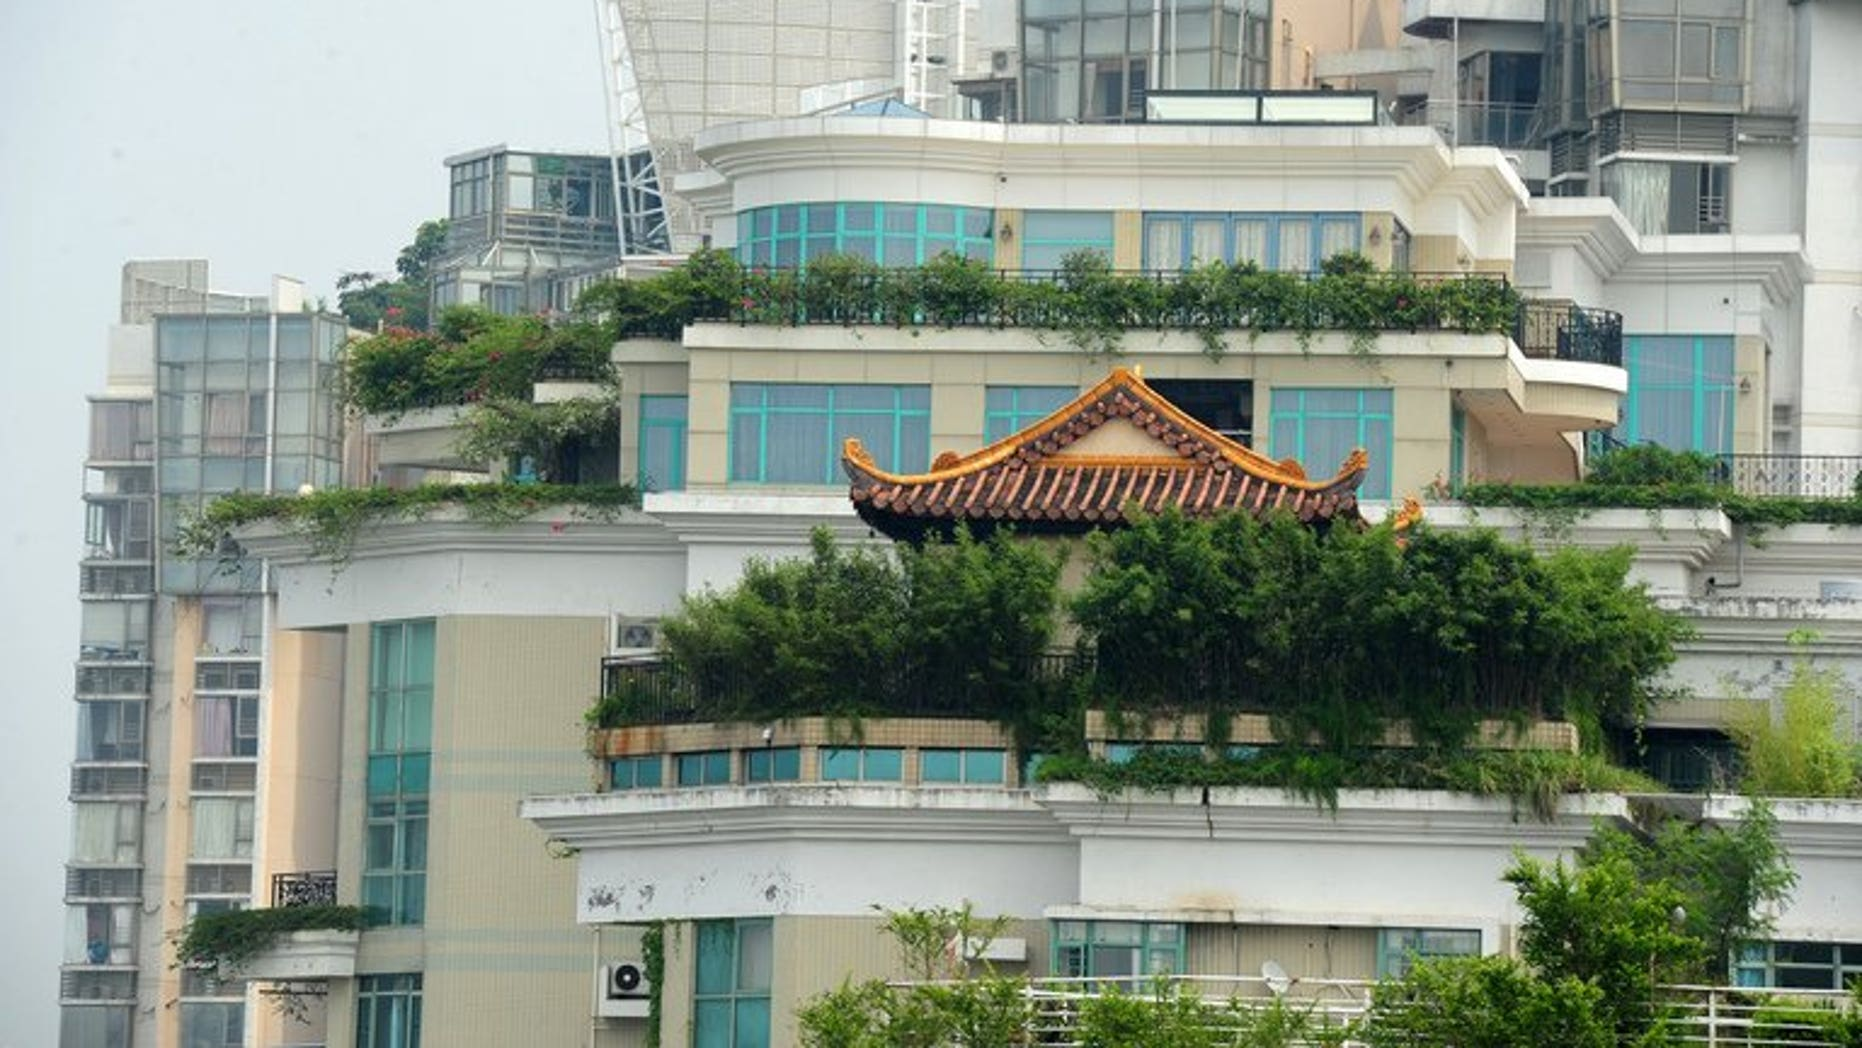 A temple is seen on the rooftop of a 21-storey apartment building in Shenzhen, south China's Guangdong province on August 21, 2013. The latest rooftop architectural wonder highlighted in China is a temple that brings worshippers closer to the heavens by being on top of a 21-storey apartment block.